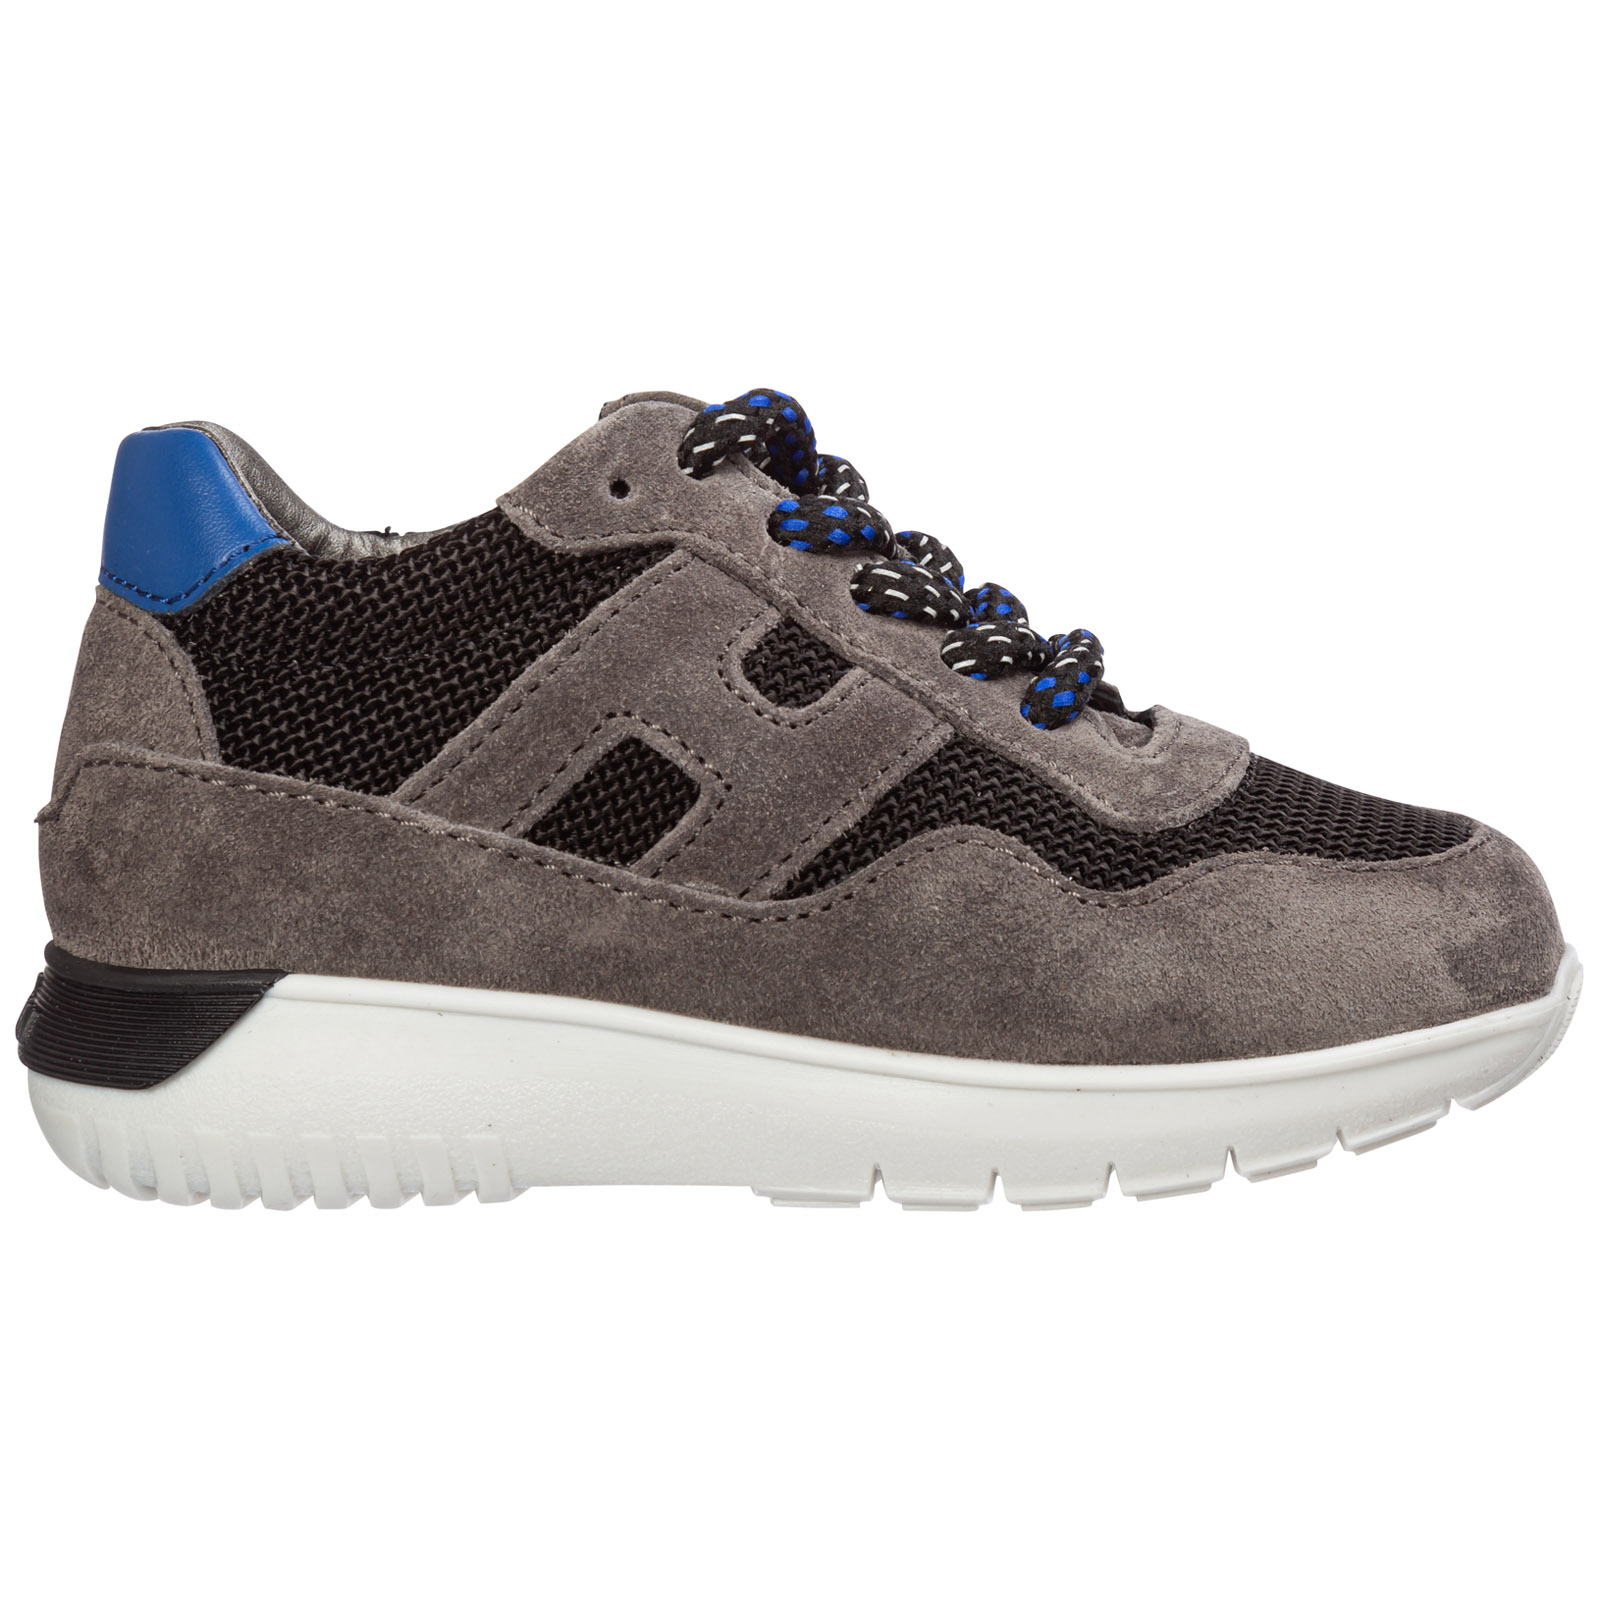 Hogan Sneakers BOYS SHOES BABY CHILD SNEAKERS SUEDE LEATHER INTERACTIVE3